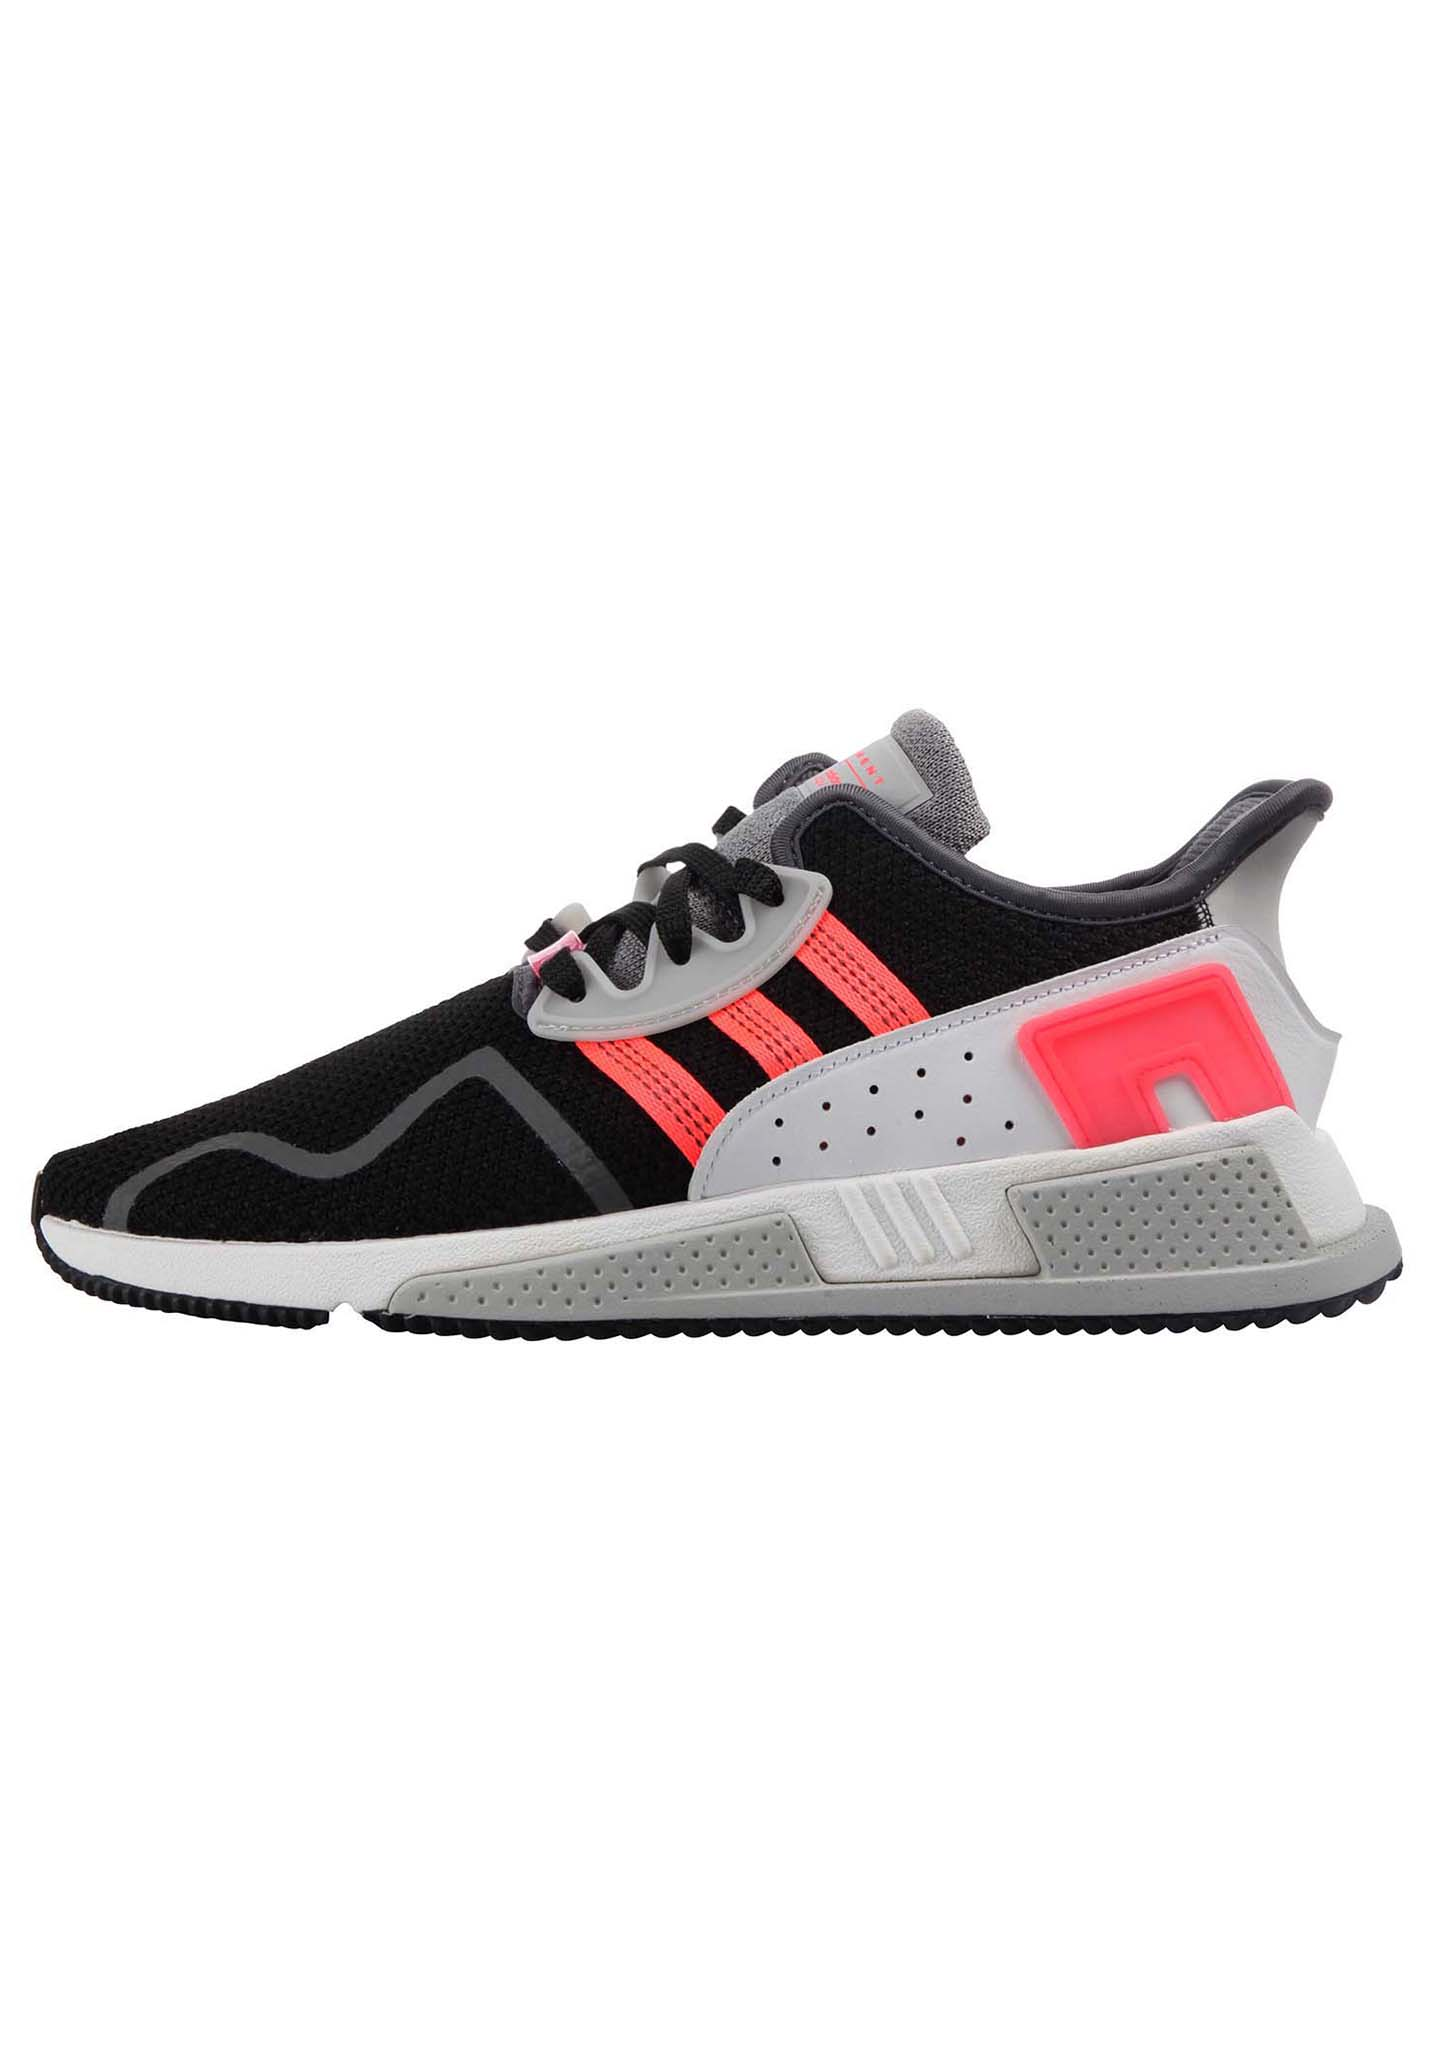 low priced 75516 1046e ADIDAS ORIGINALS Eqt Cushion Adv - Sneakers for Men - Black